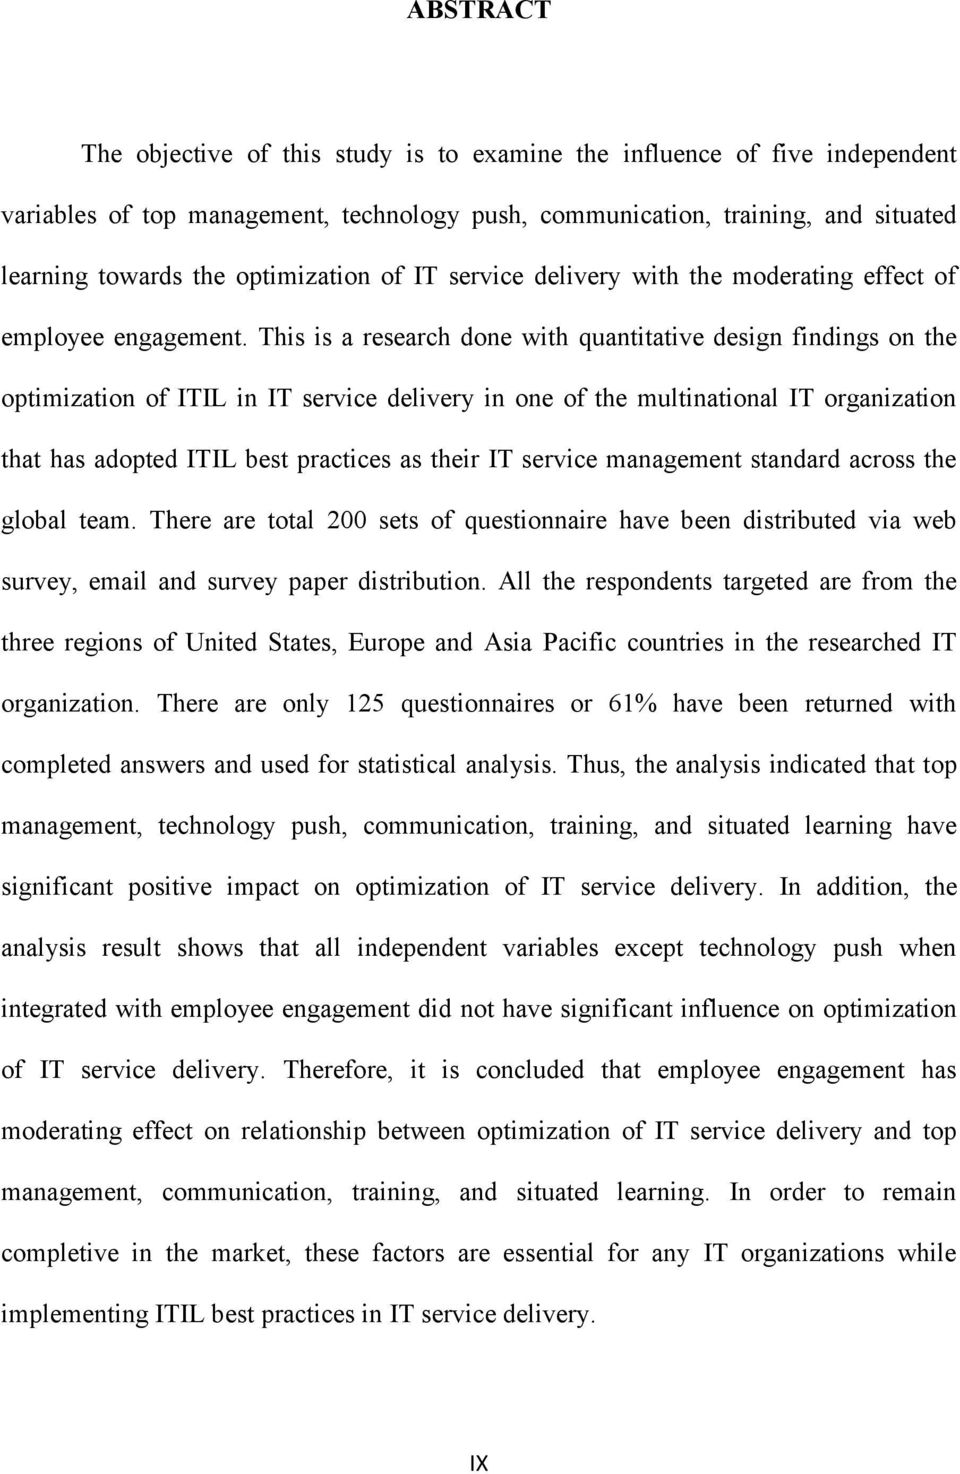 This is a research done with quantitative design findings on the optimization of ITIL in IT service delivery in one of the multinational IT organization that has adopted ITIL best practices as their